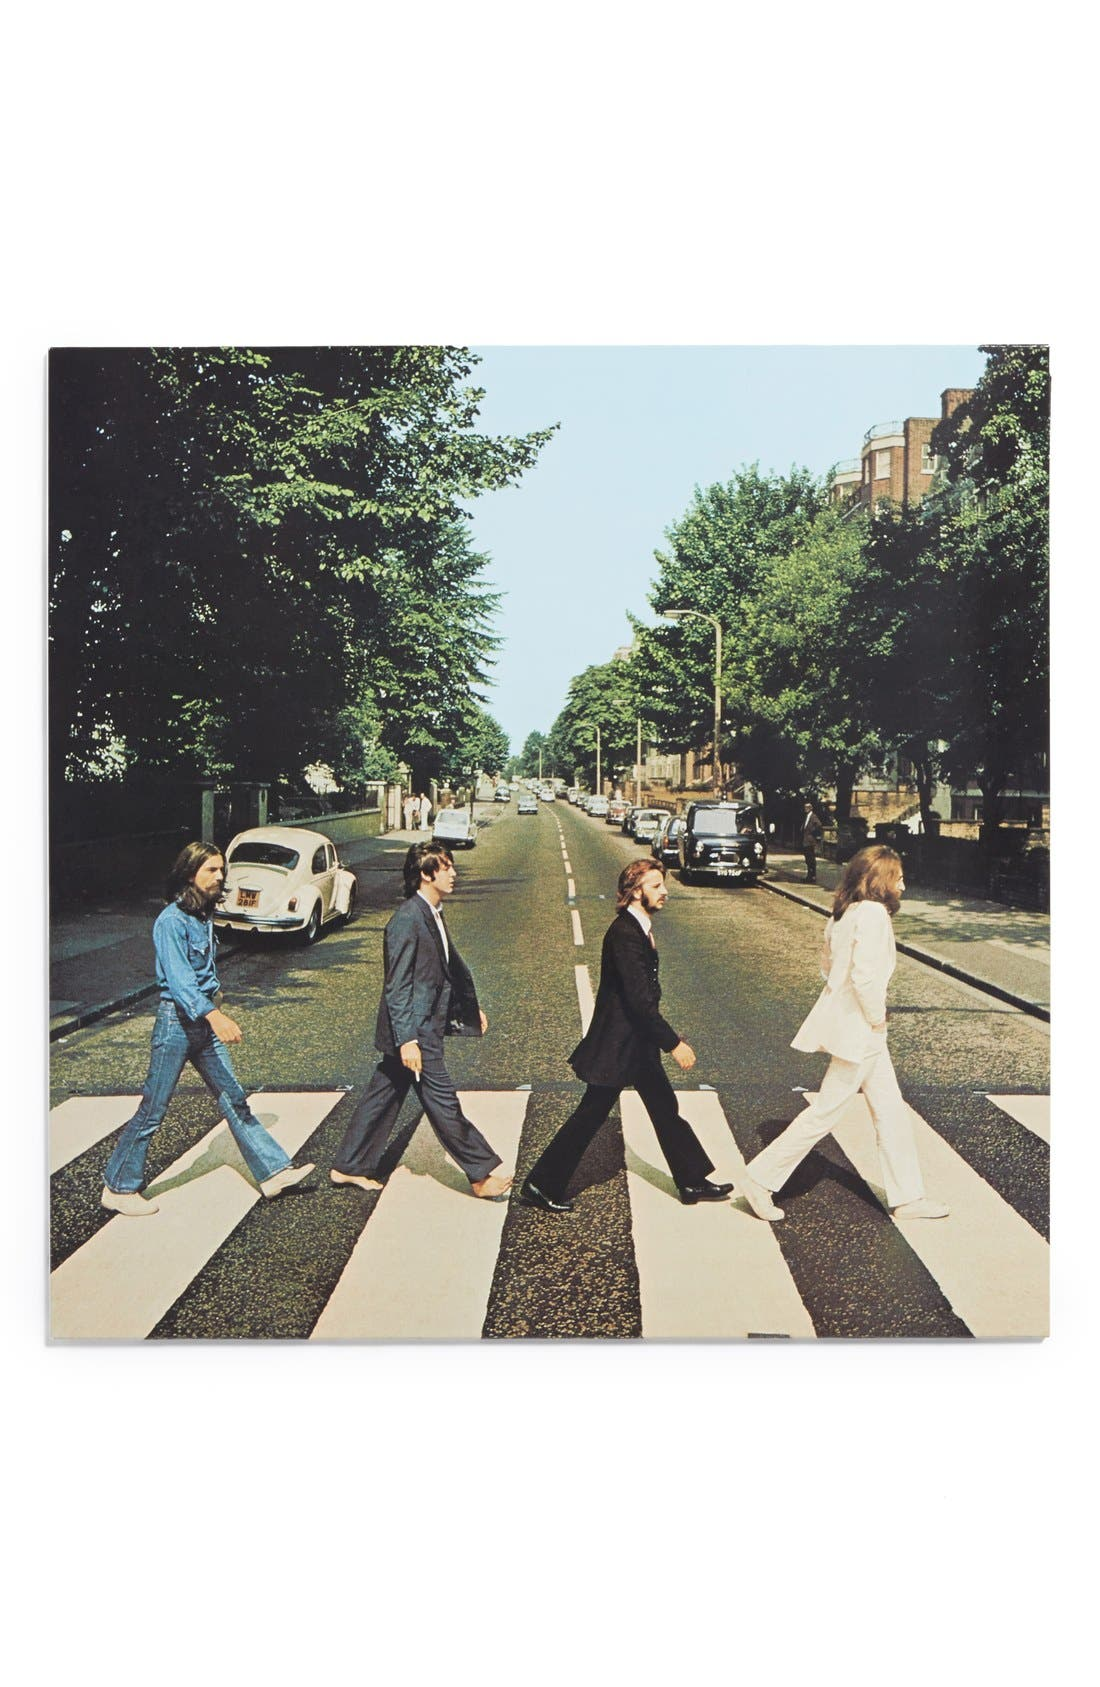 Main Image - The Beatles 'Abbey Road' LP Vinyl Record